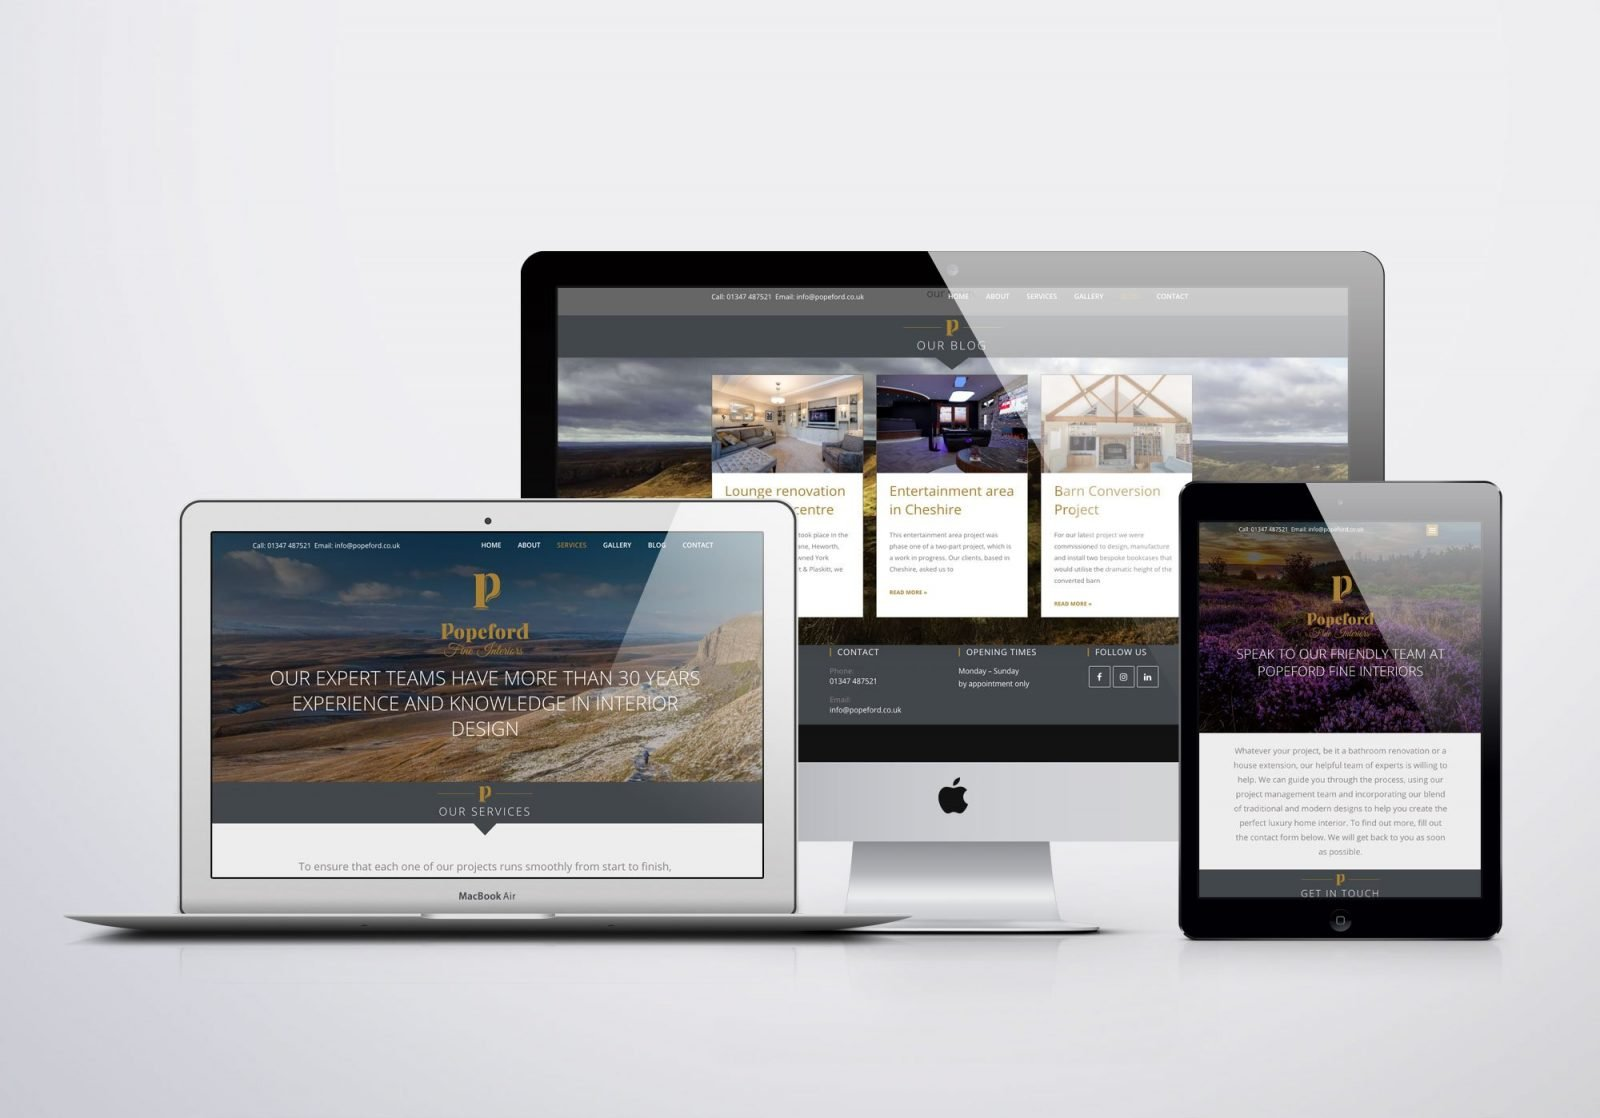 A desktop computer, a laptop and ipad showing images of Popeford Interior Designers website design